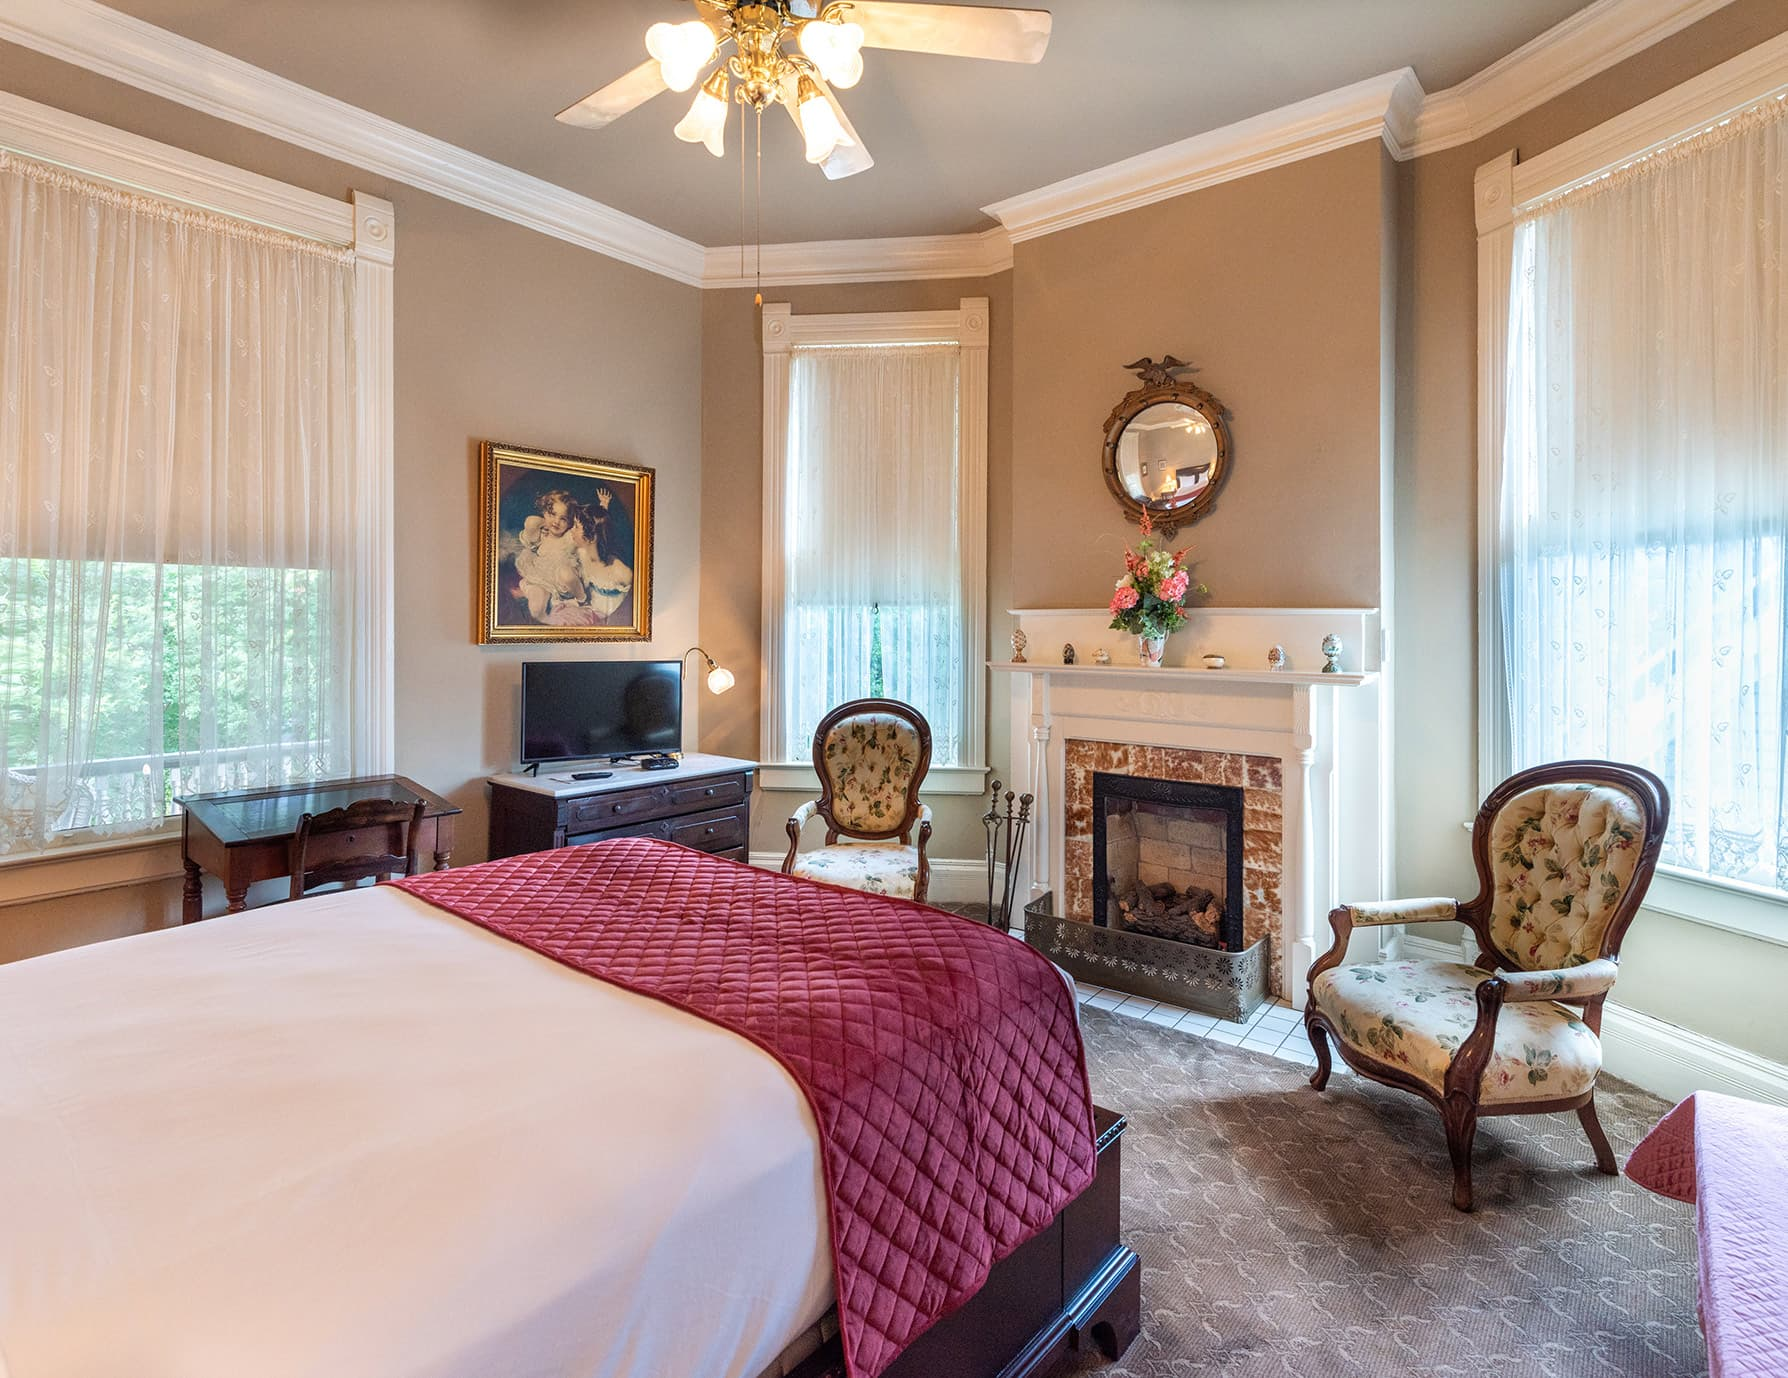 Gallery Suite at our Natchez MS inn